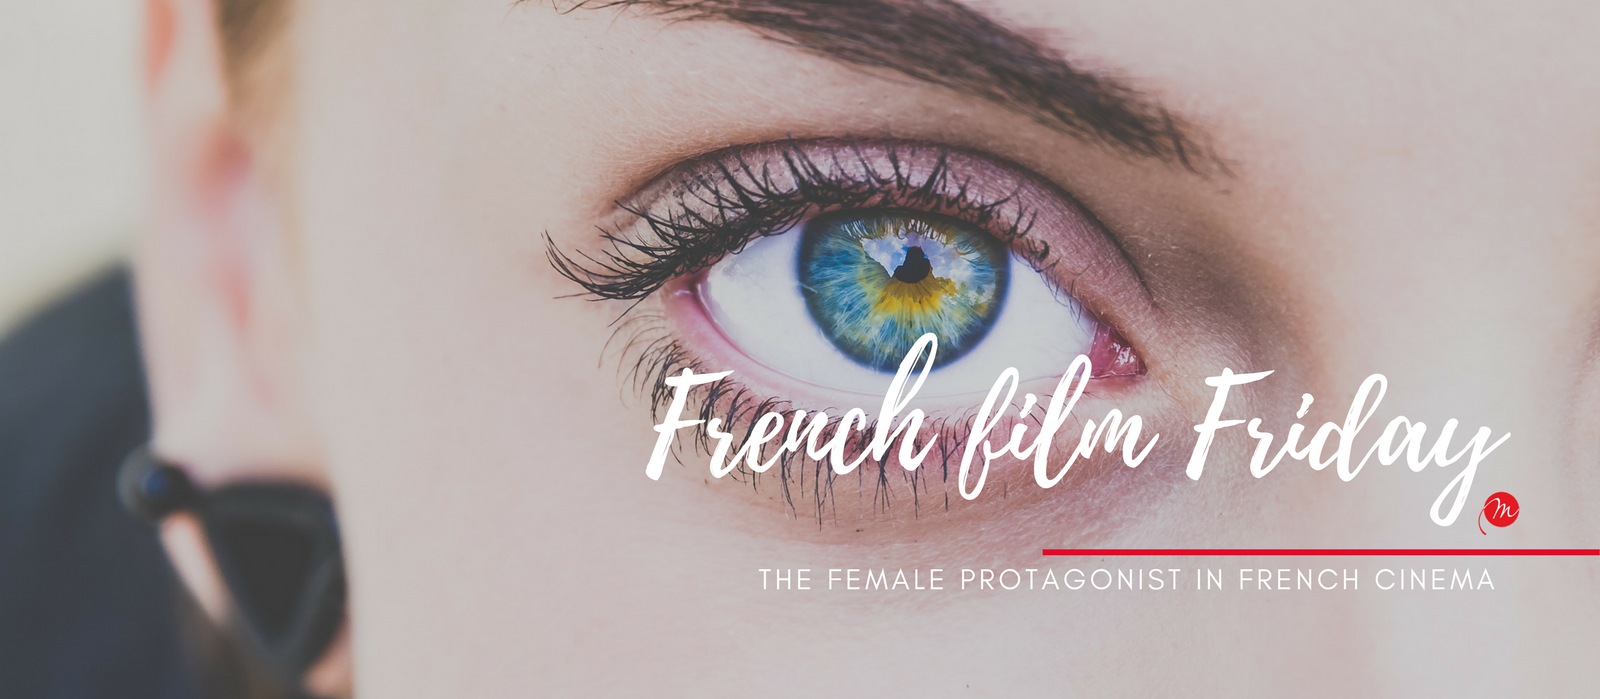 MyFrenchLife™ – MyFrenchLife.org – French film Friday: the female protagonist – iconic female roles in French cinema